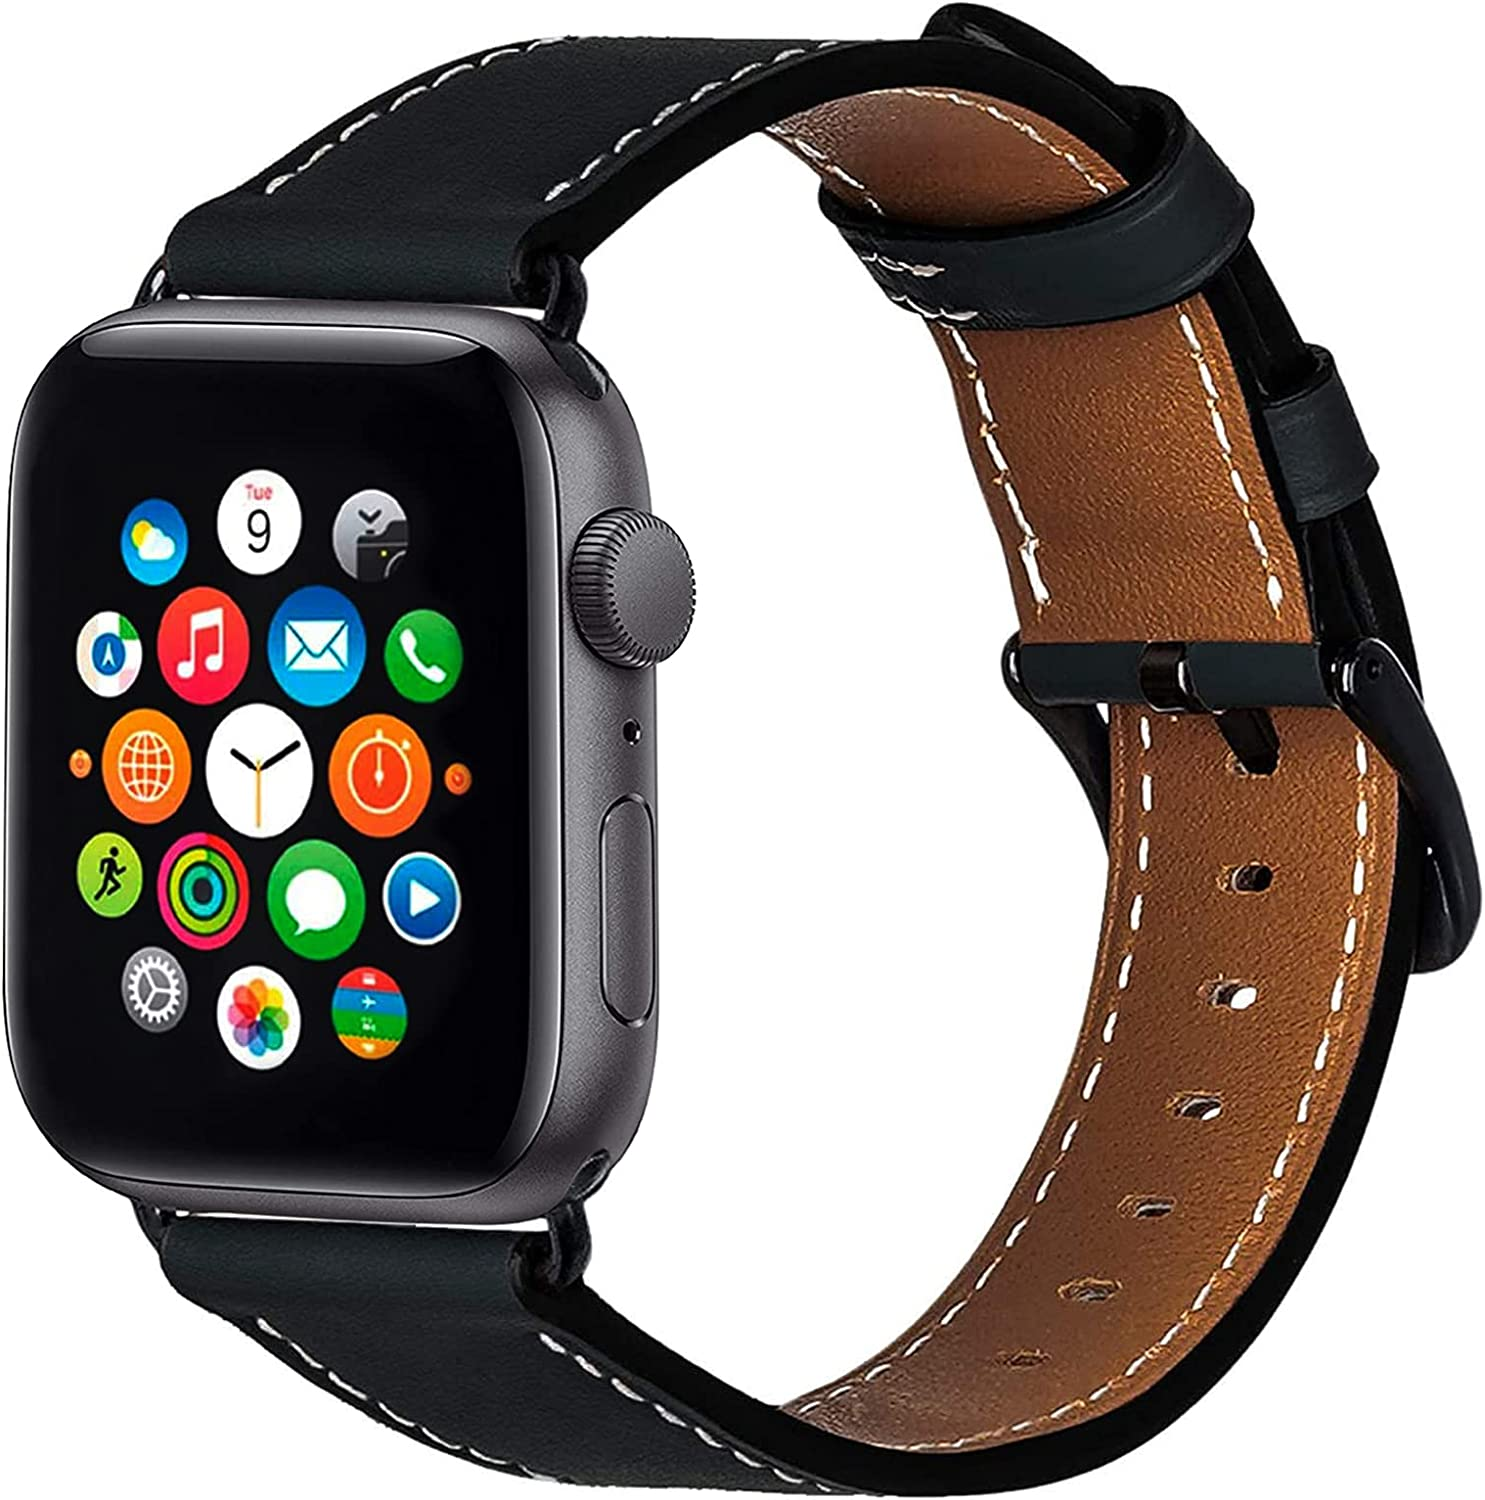 ALADRS Watch Straps Compatible for Apple Watch Leather Band 44mm 42mm, Wristbands Replacement for iWatch Series 6 5 4, SE (44mm) Series 3 2 1 (42mm), Black